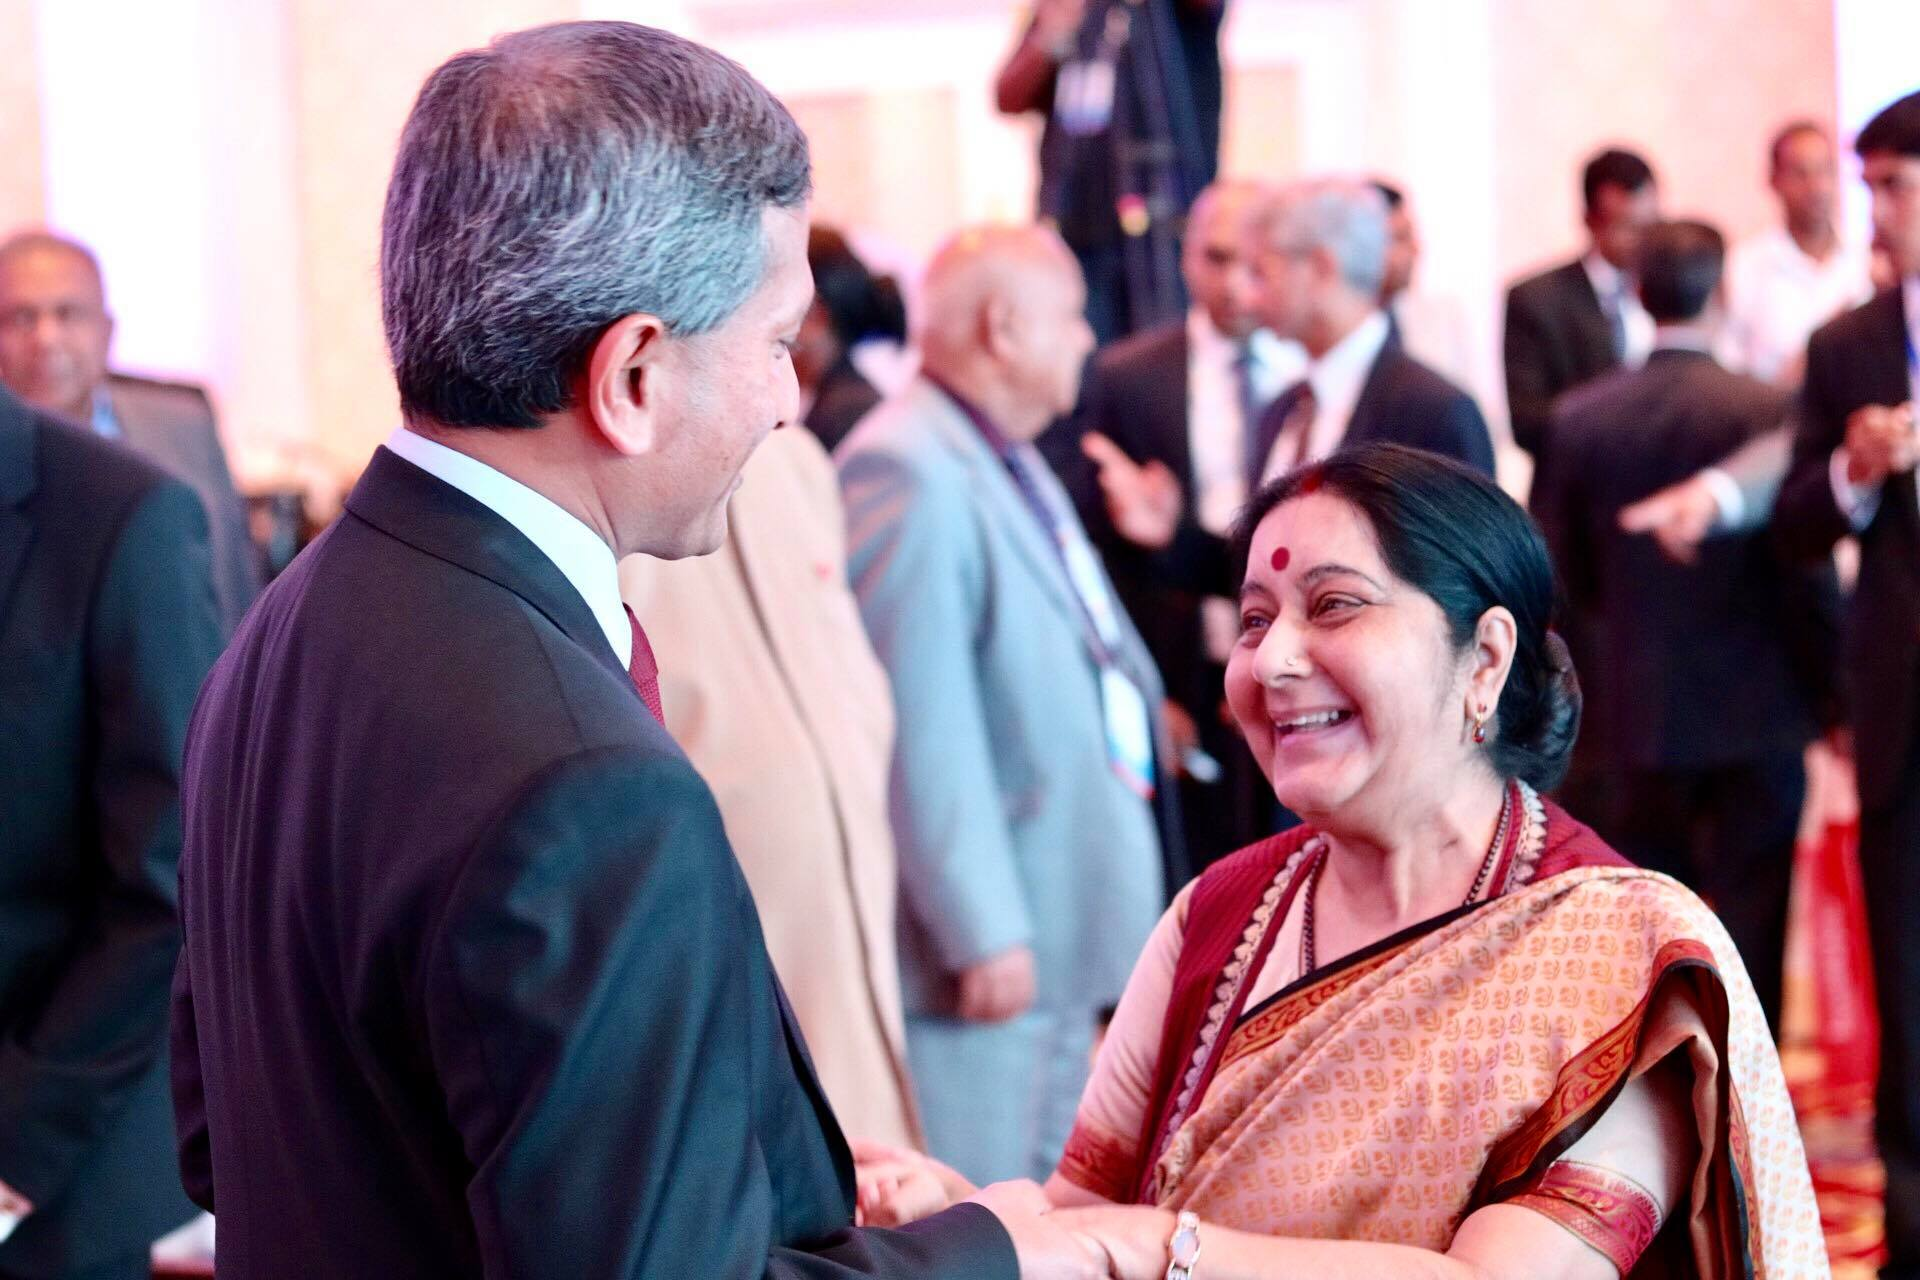 Singapore Minister for Foreign Affairs Dr Vivian Balakrishnan meets Indian Minister of External Affairs Sushma Swaraj Indian Ocean Conference in Colombo.